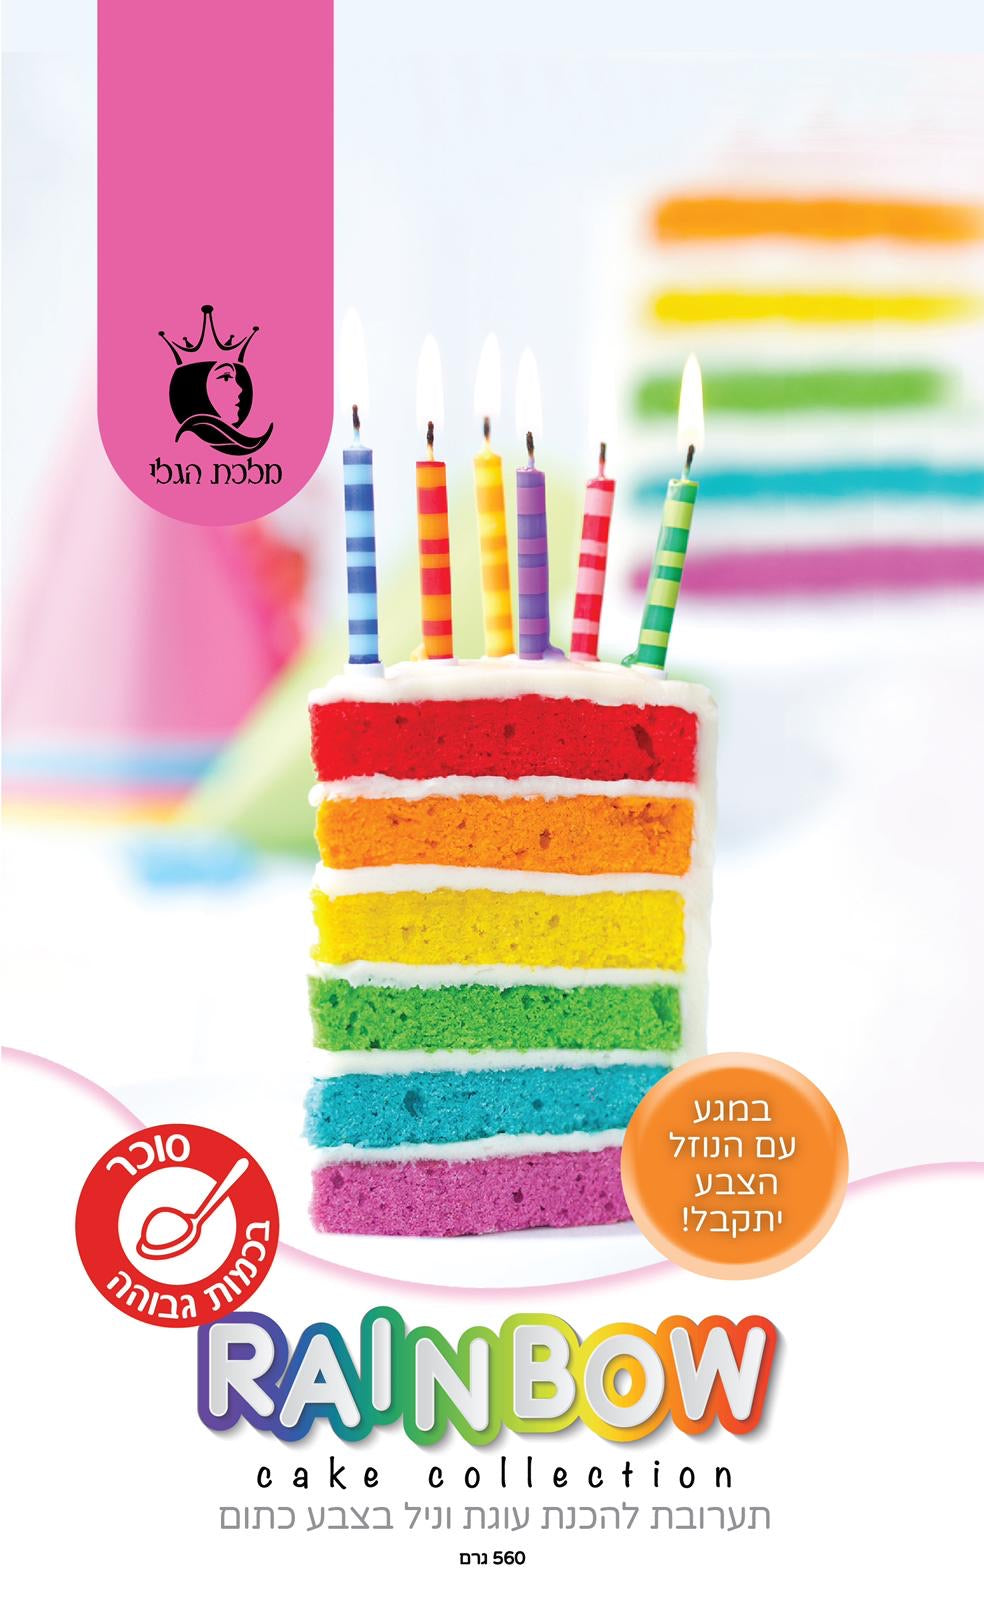 Rainbow Cake collection - כתום